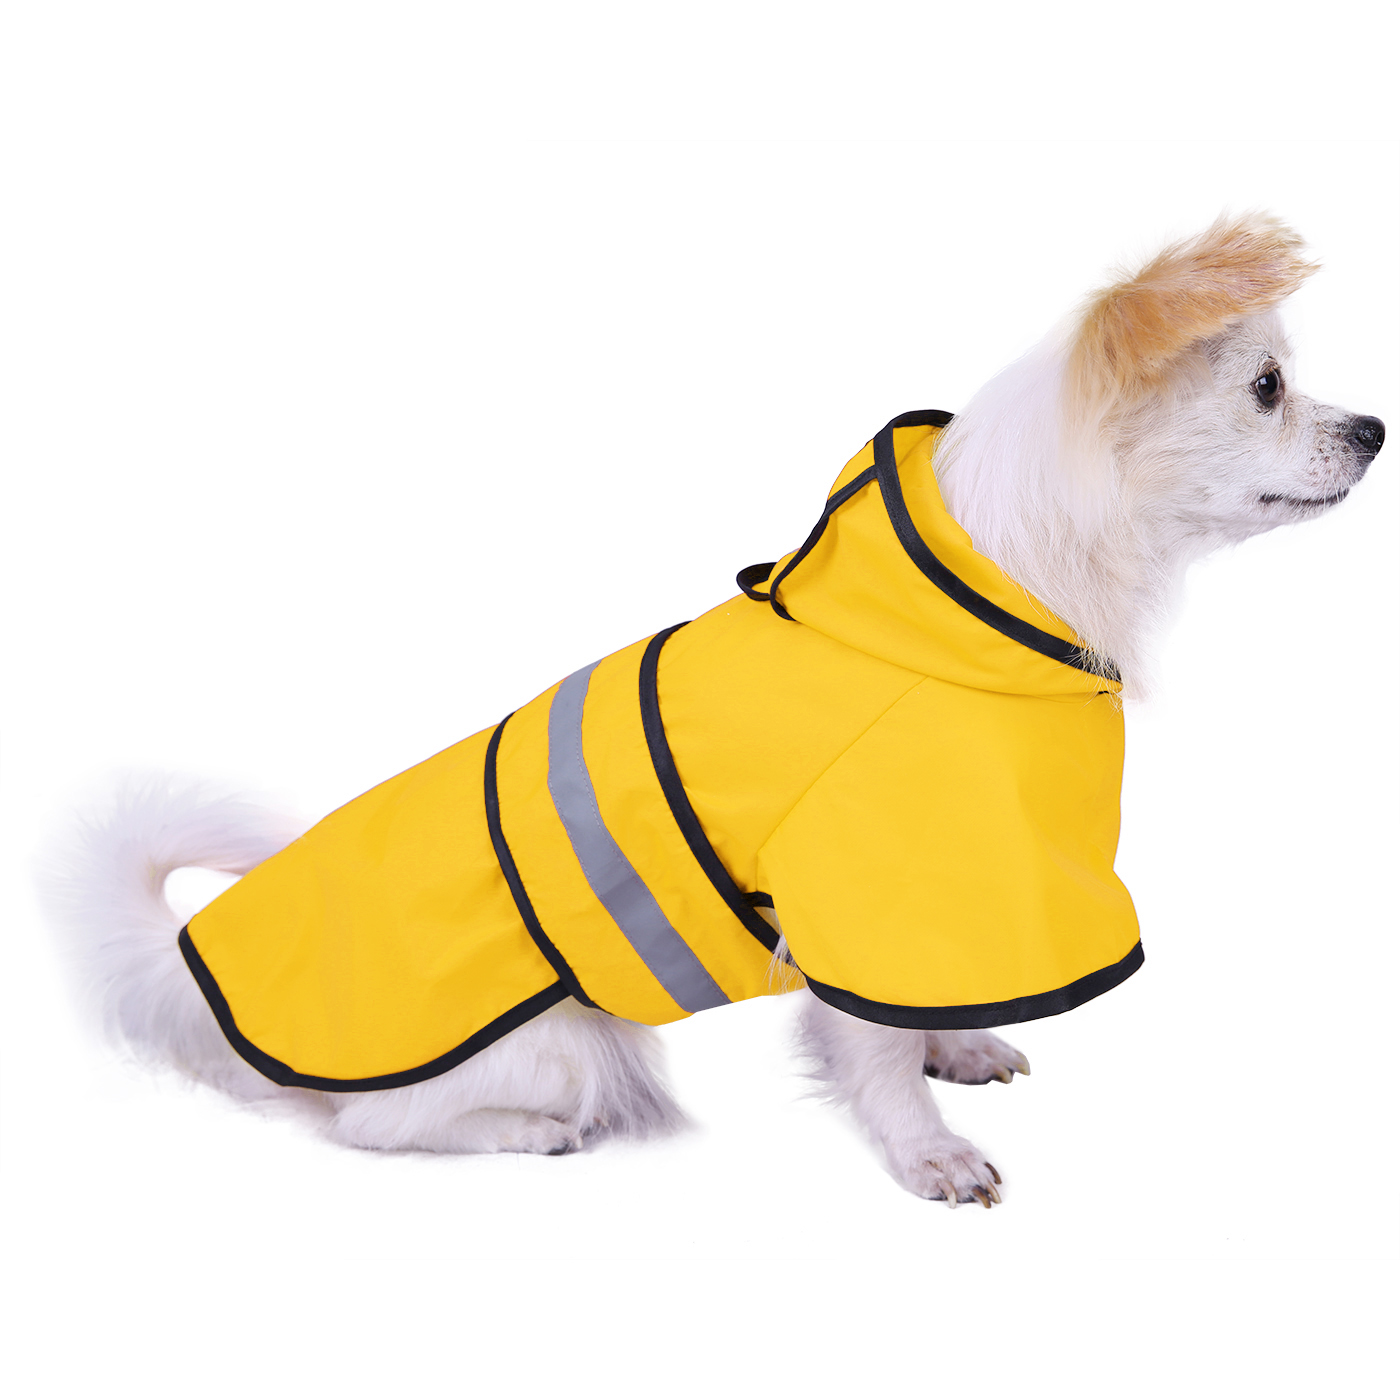 HDE Dog Raincoat Hooded Slicker Poncho for Small to X-Large Dogs and Puppies HDE Dog Raincoat Hooded Slicker Poncho for Small to X-Large Dogs and Puppies